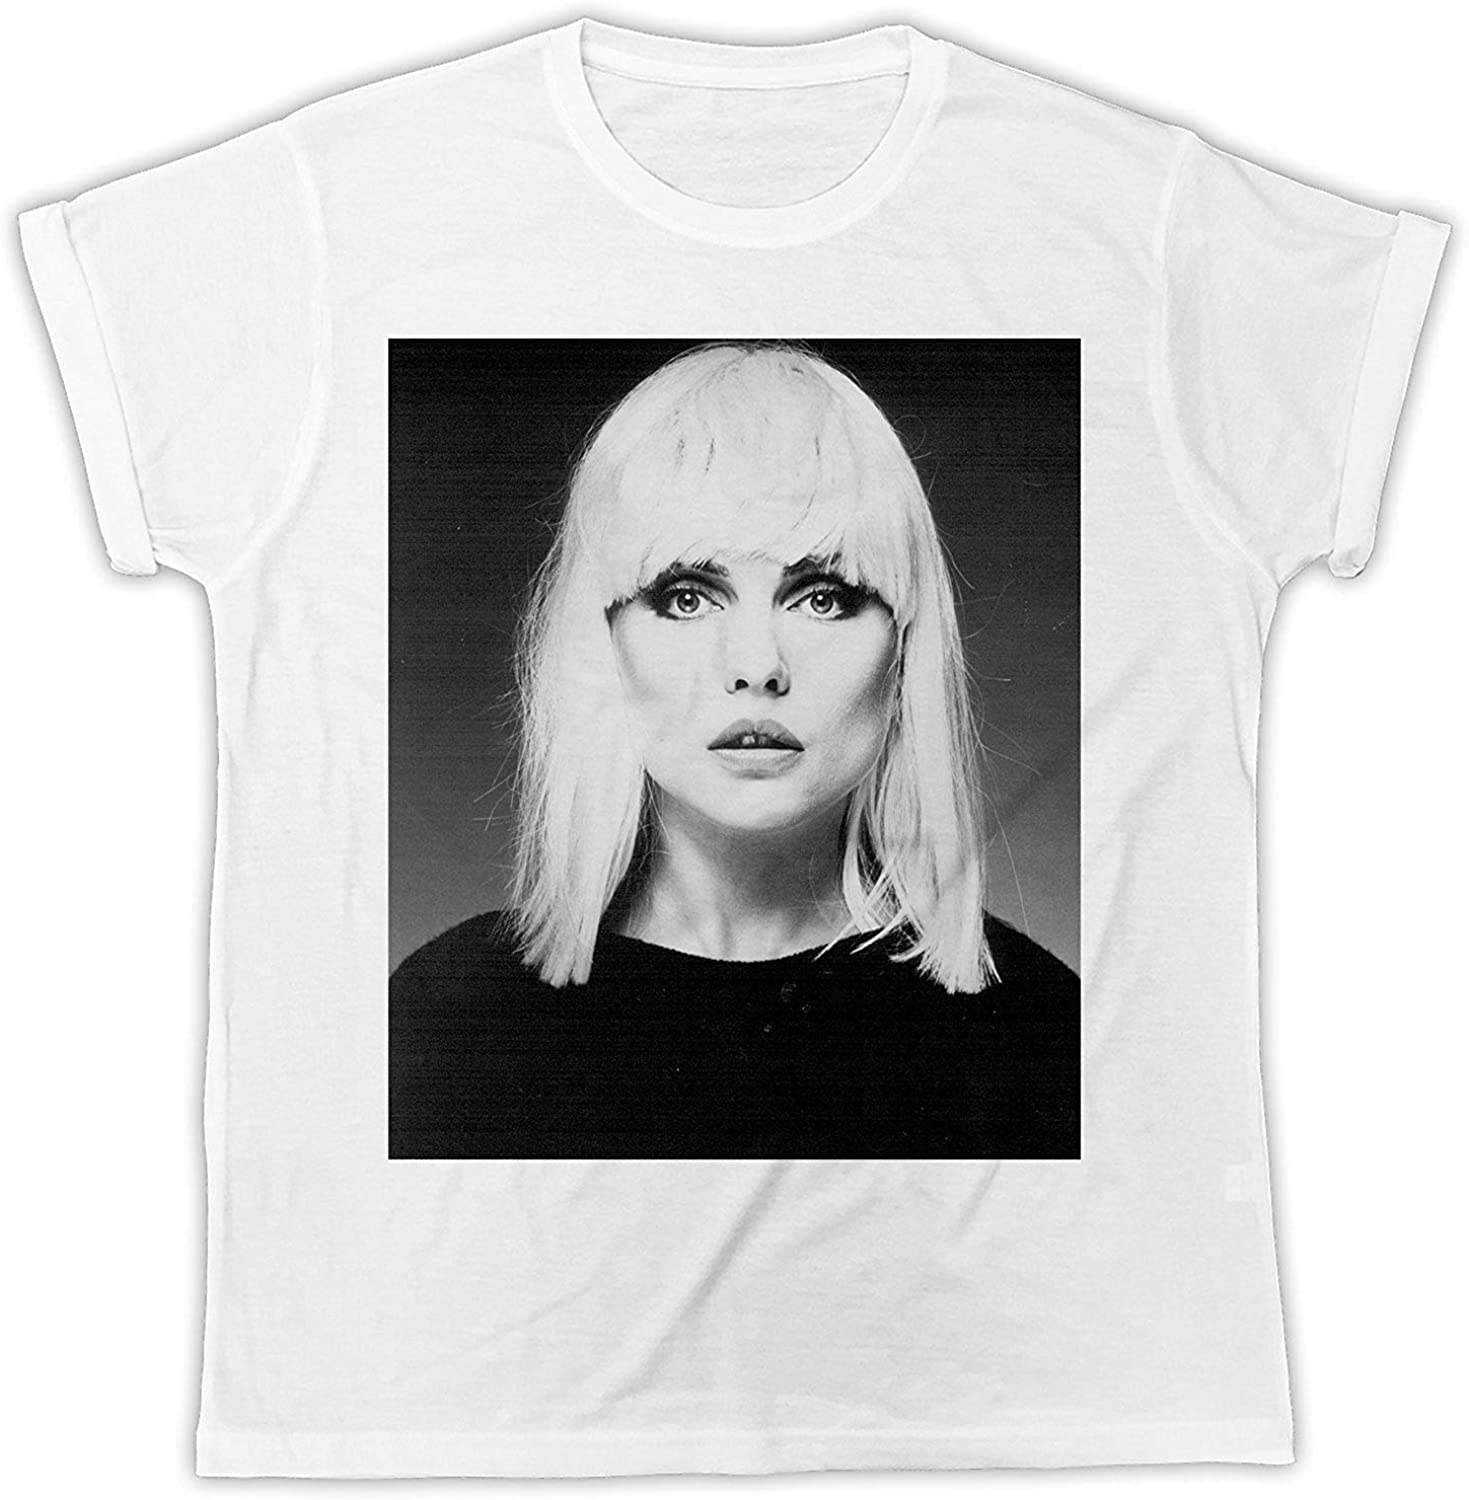 DEBBIE HARRY POSTER COOL FUNNY IDEAL GIFT BIRTHDAY PRESENT UNISEX MENS TSHIRT